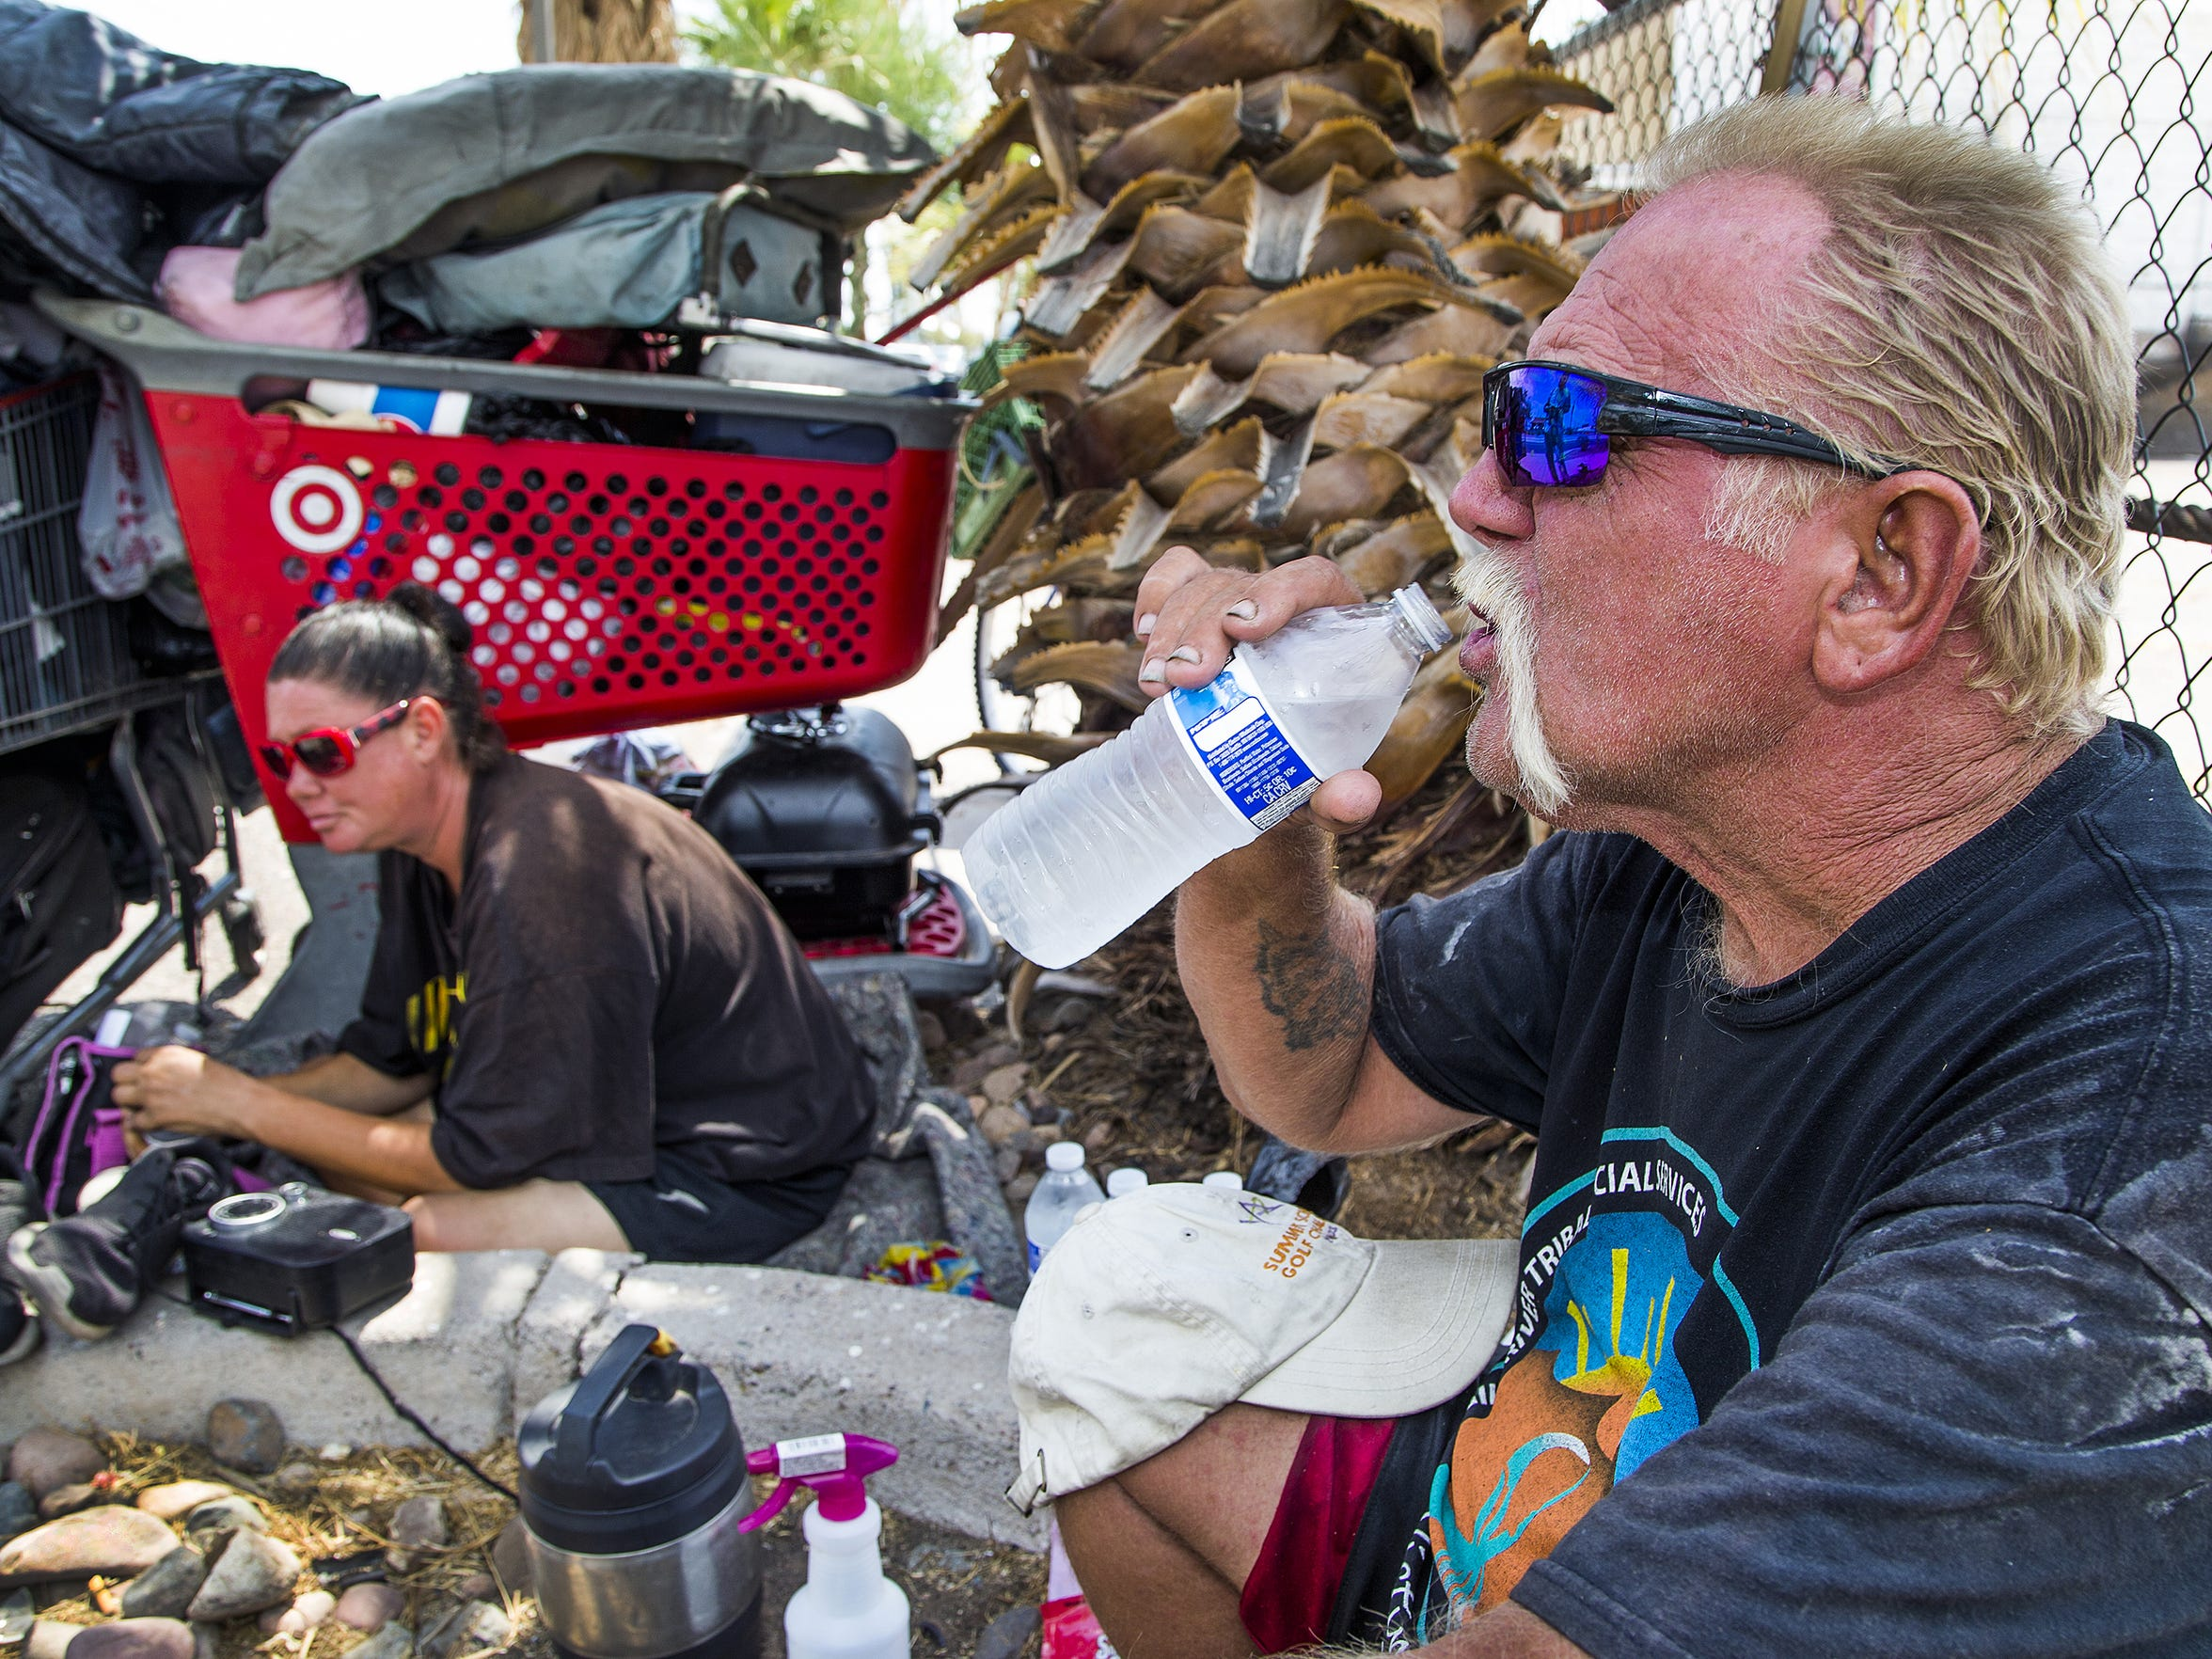 Whitey Hurst, 50, right, takes a swig from a cold bottle of water given to him by the Red Shield Survival Squad of the Salvation Army in June 2017.